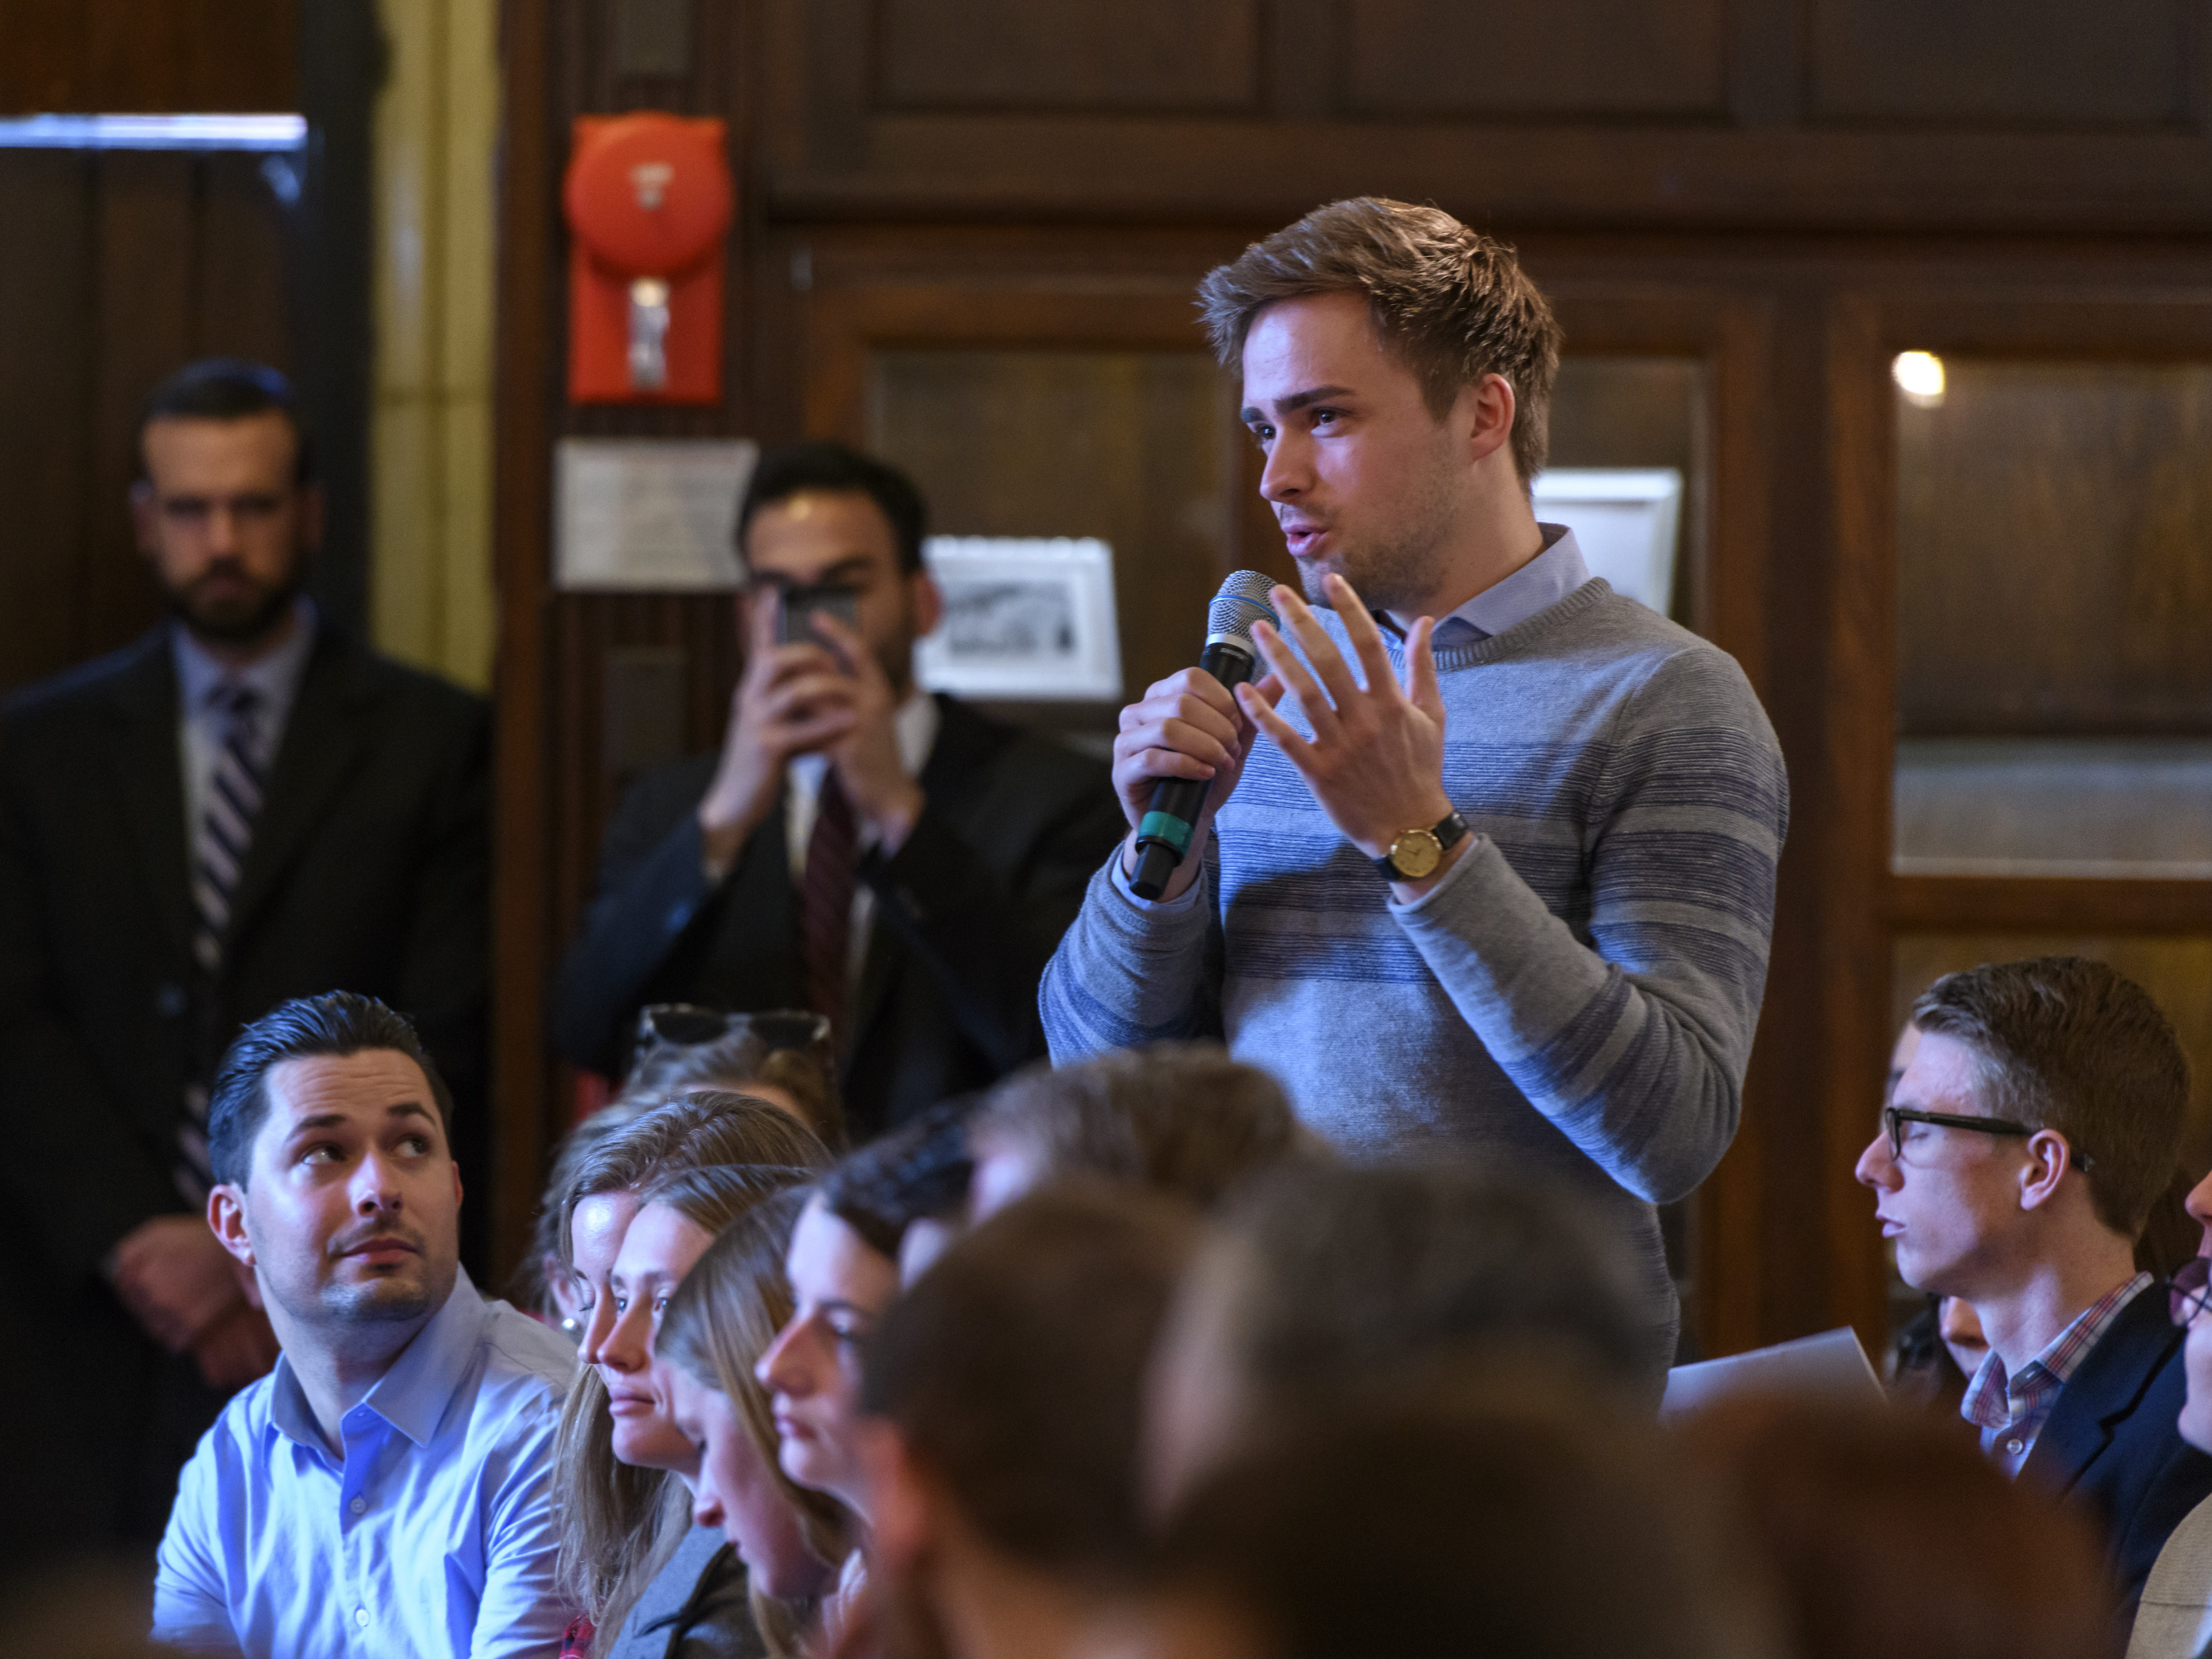 Photo of student asking a question at event